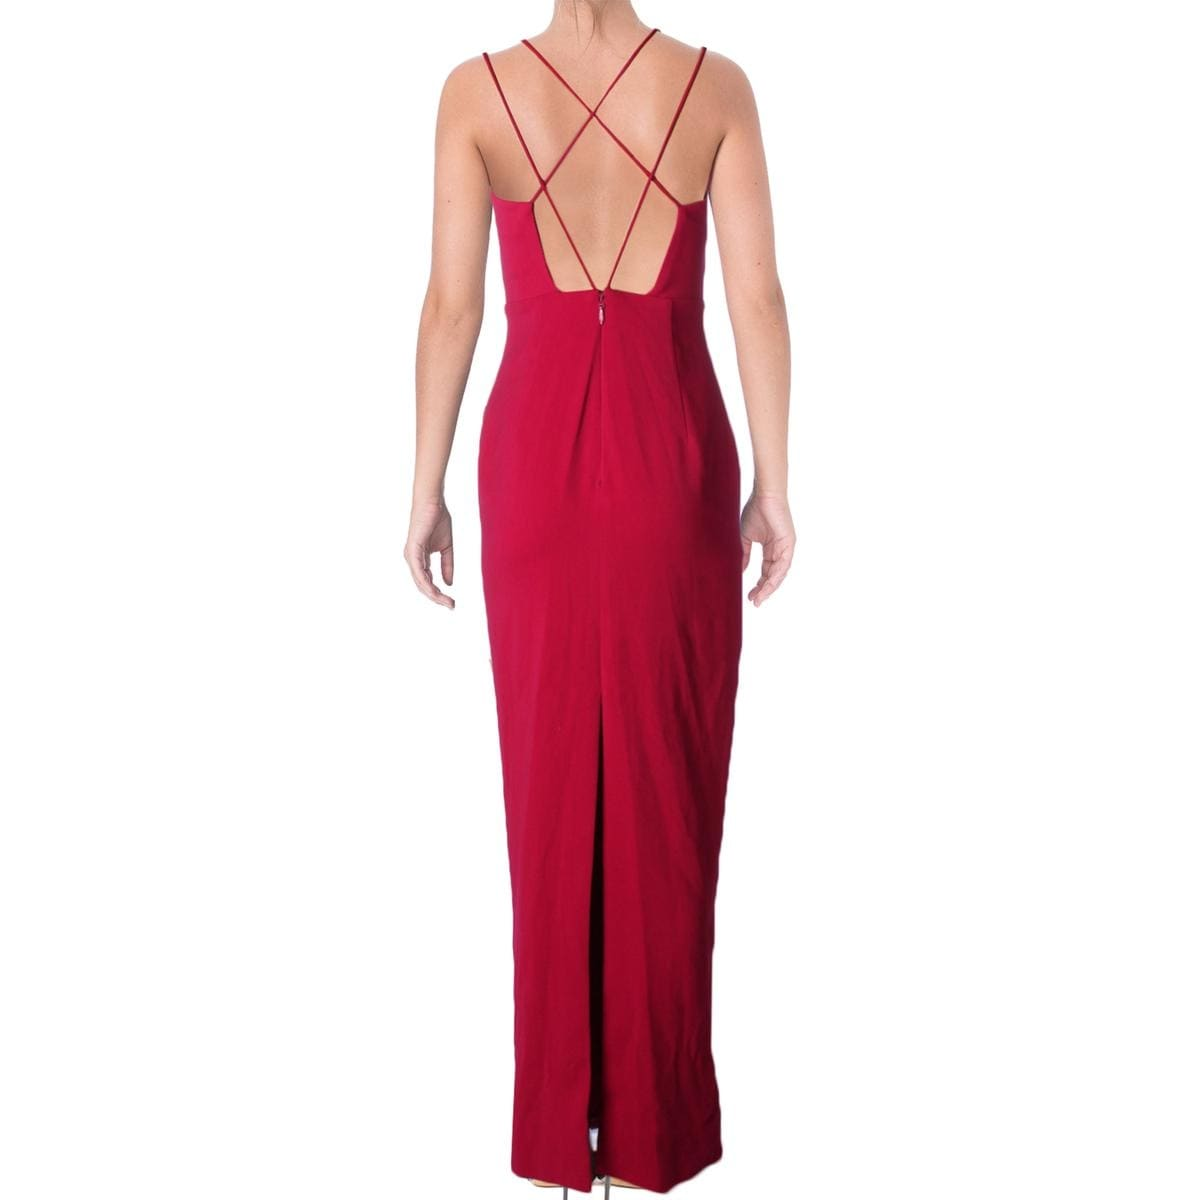 f52d55deb Shop Bariano Womens Evening Dress Criss-Cross Back Sheath - Free Shipping  On Orders Over  45 - Overstock - 17364939